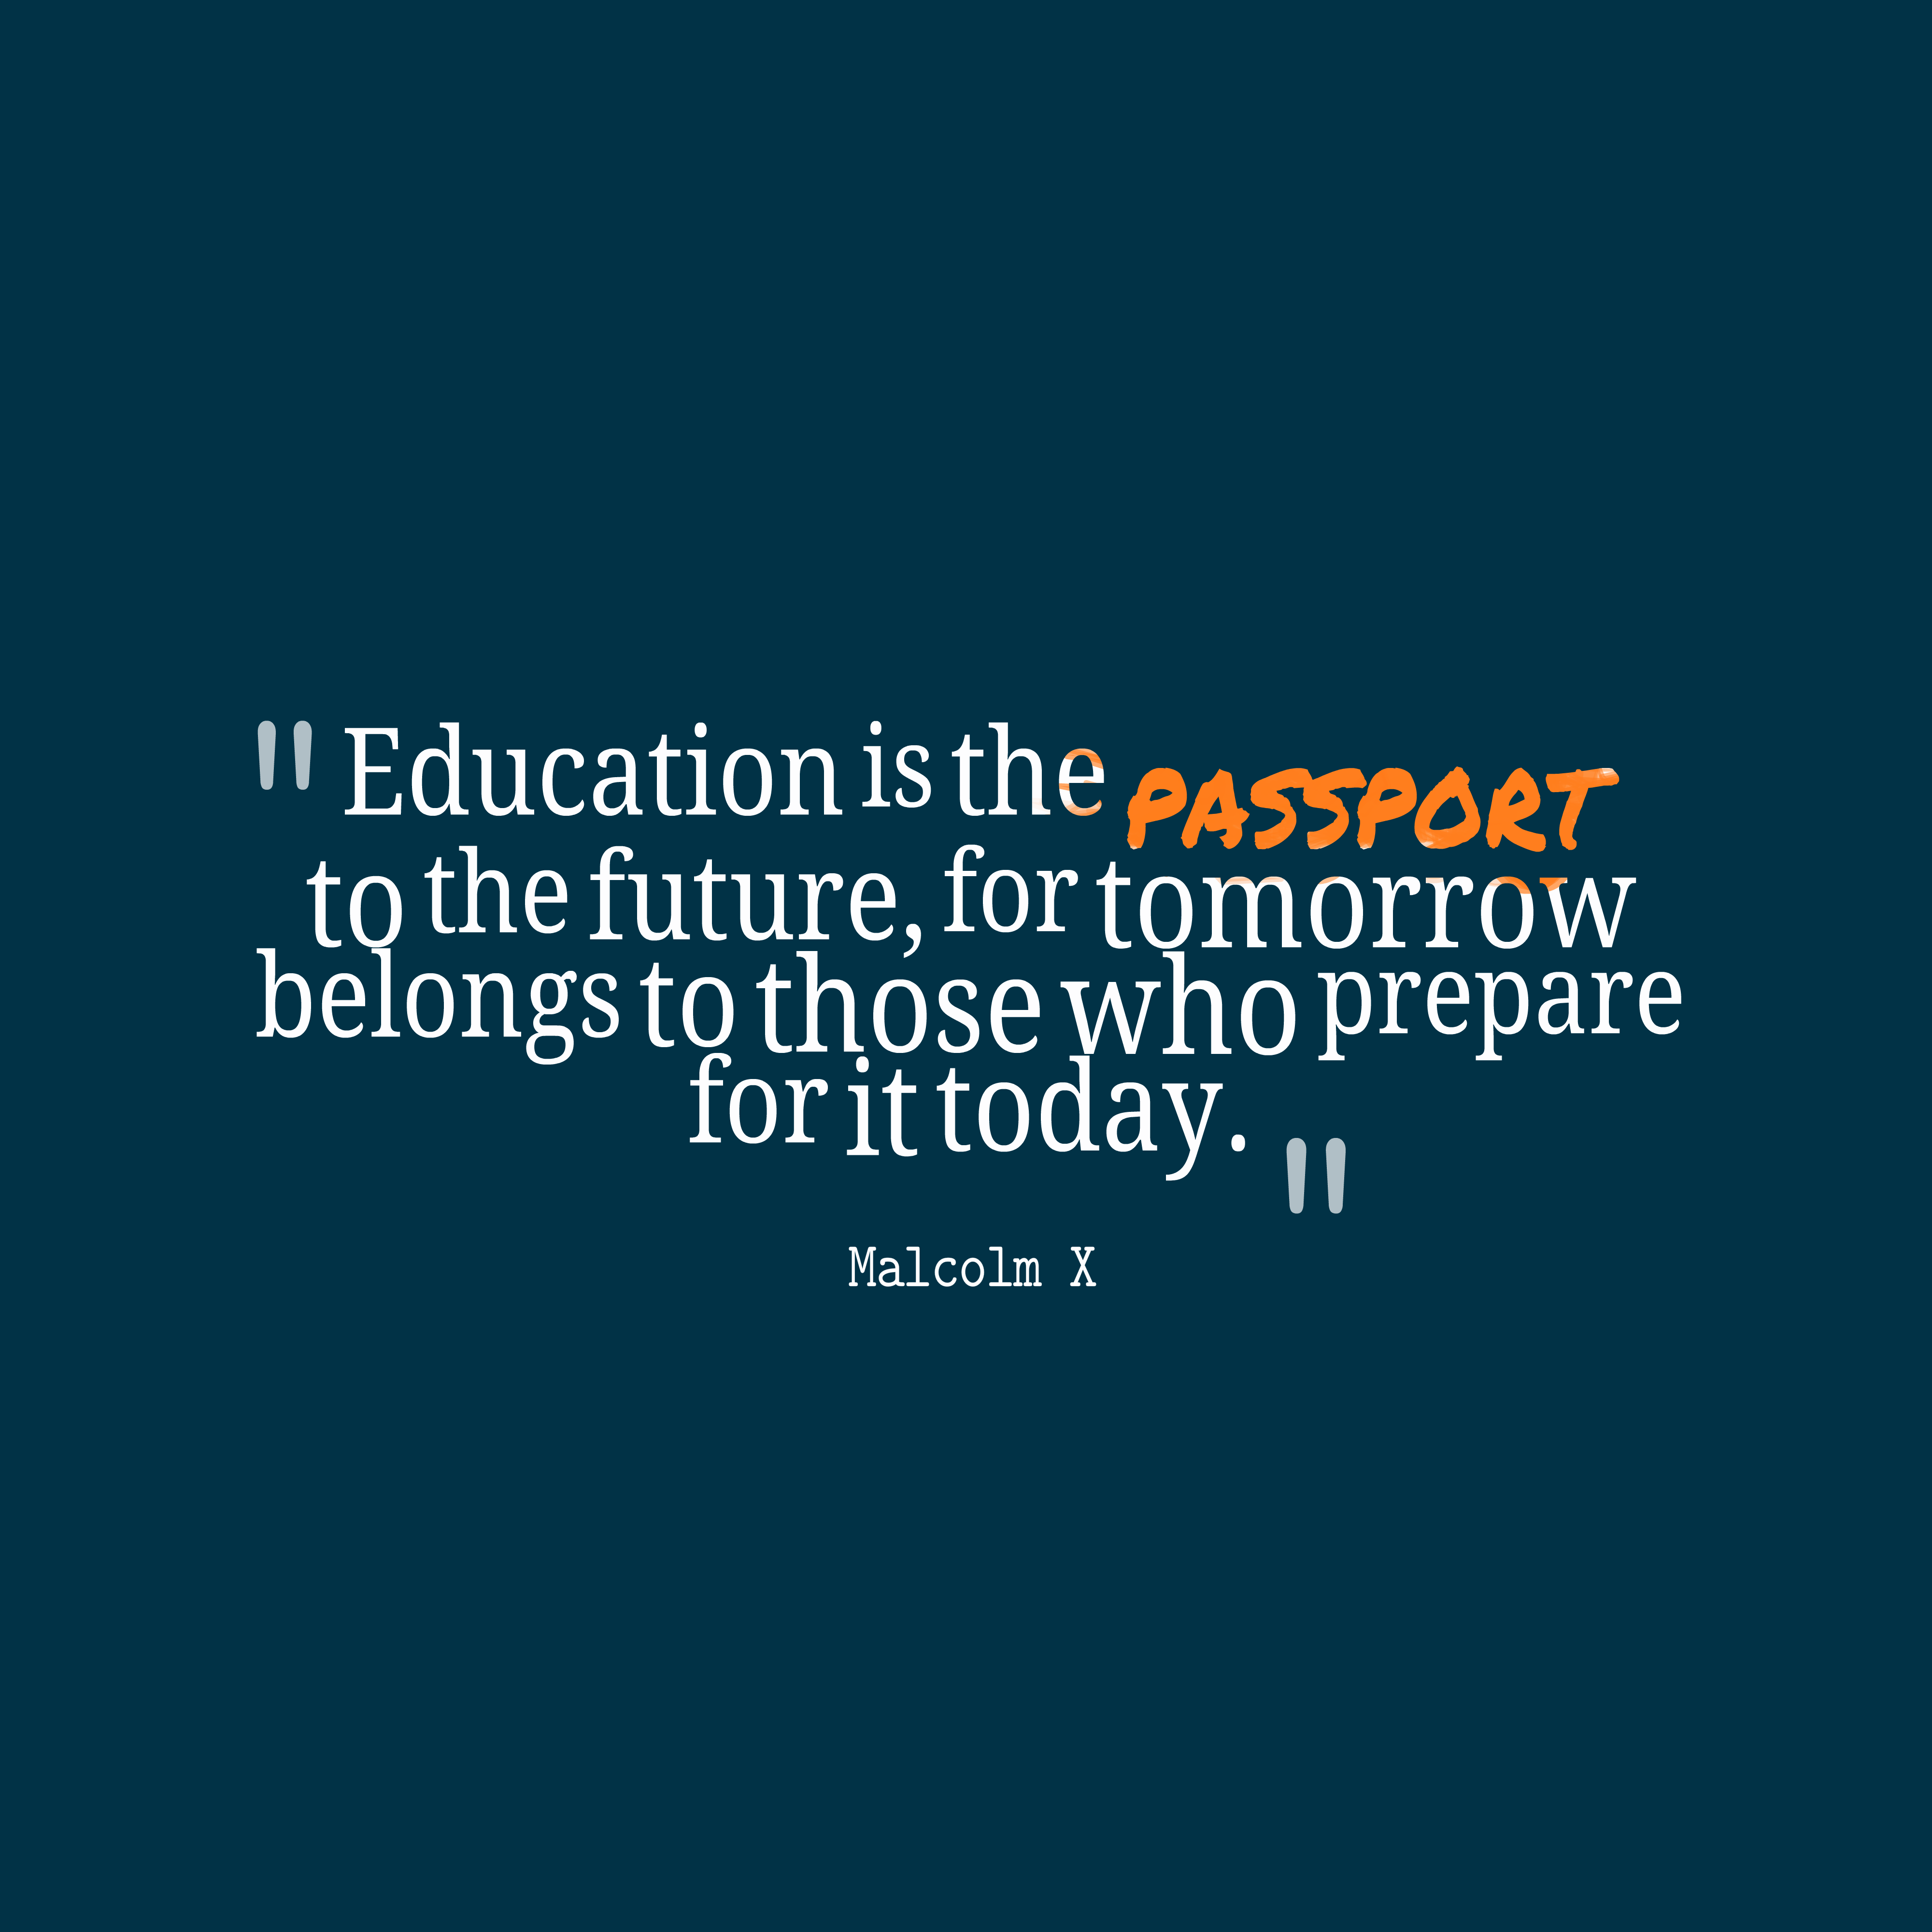 Quotes image of Education is the passport to the future, for tomorrow belongs to those who prepare for it today.